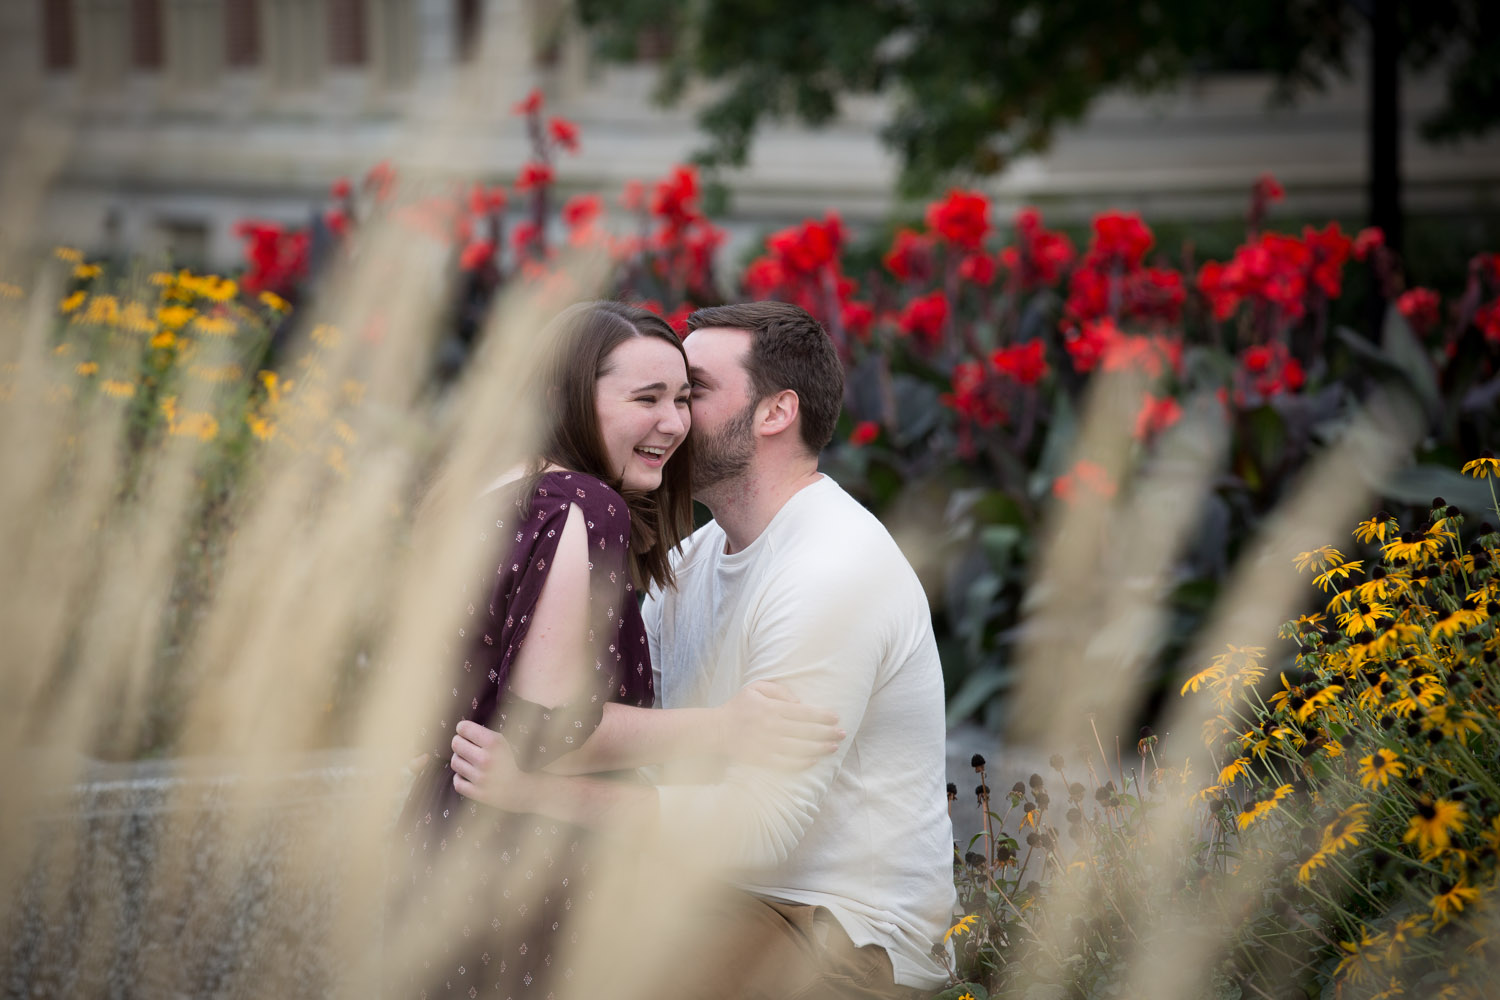 02-university-of-minnesota-minneapolis-campus-fall-engagment-session-fun-candid-portraits-prairie-grass-mahonen-phootgraphy.jpg